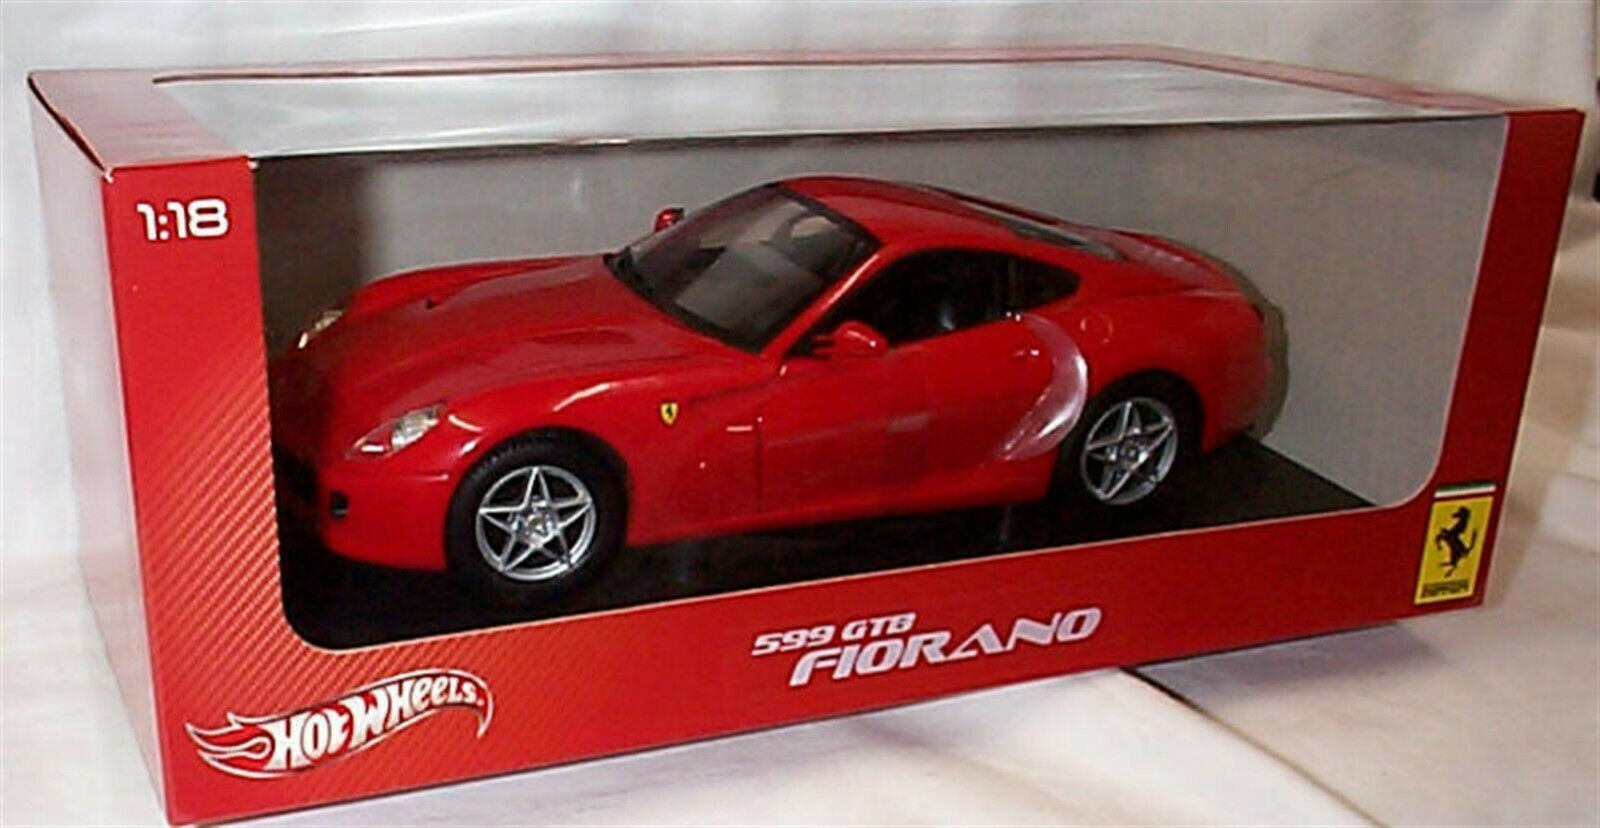 FERRARI 599 GTB Fiorano in rot Hotwheels 1 18 new in box P4398